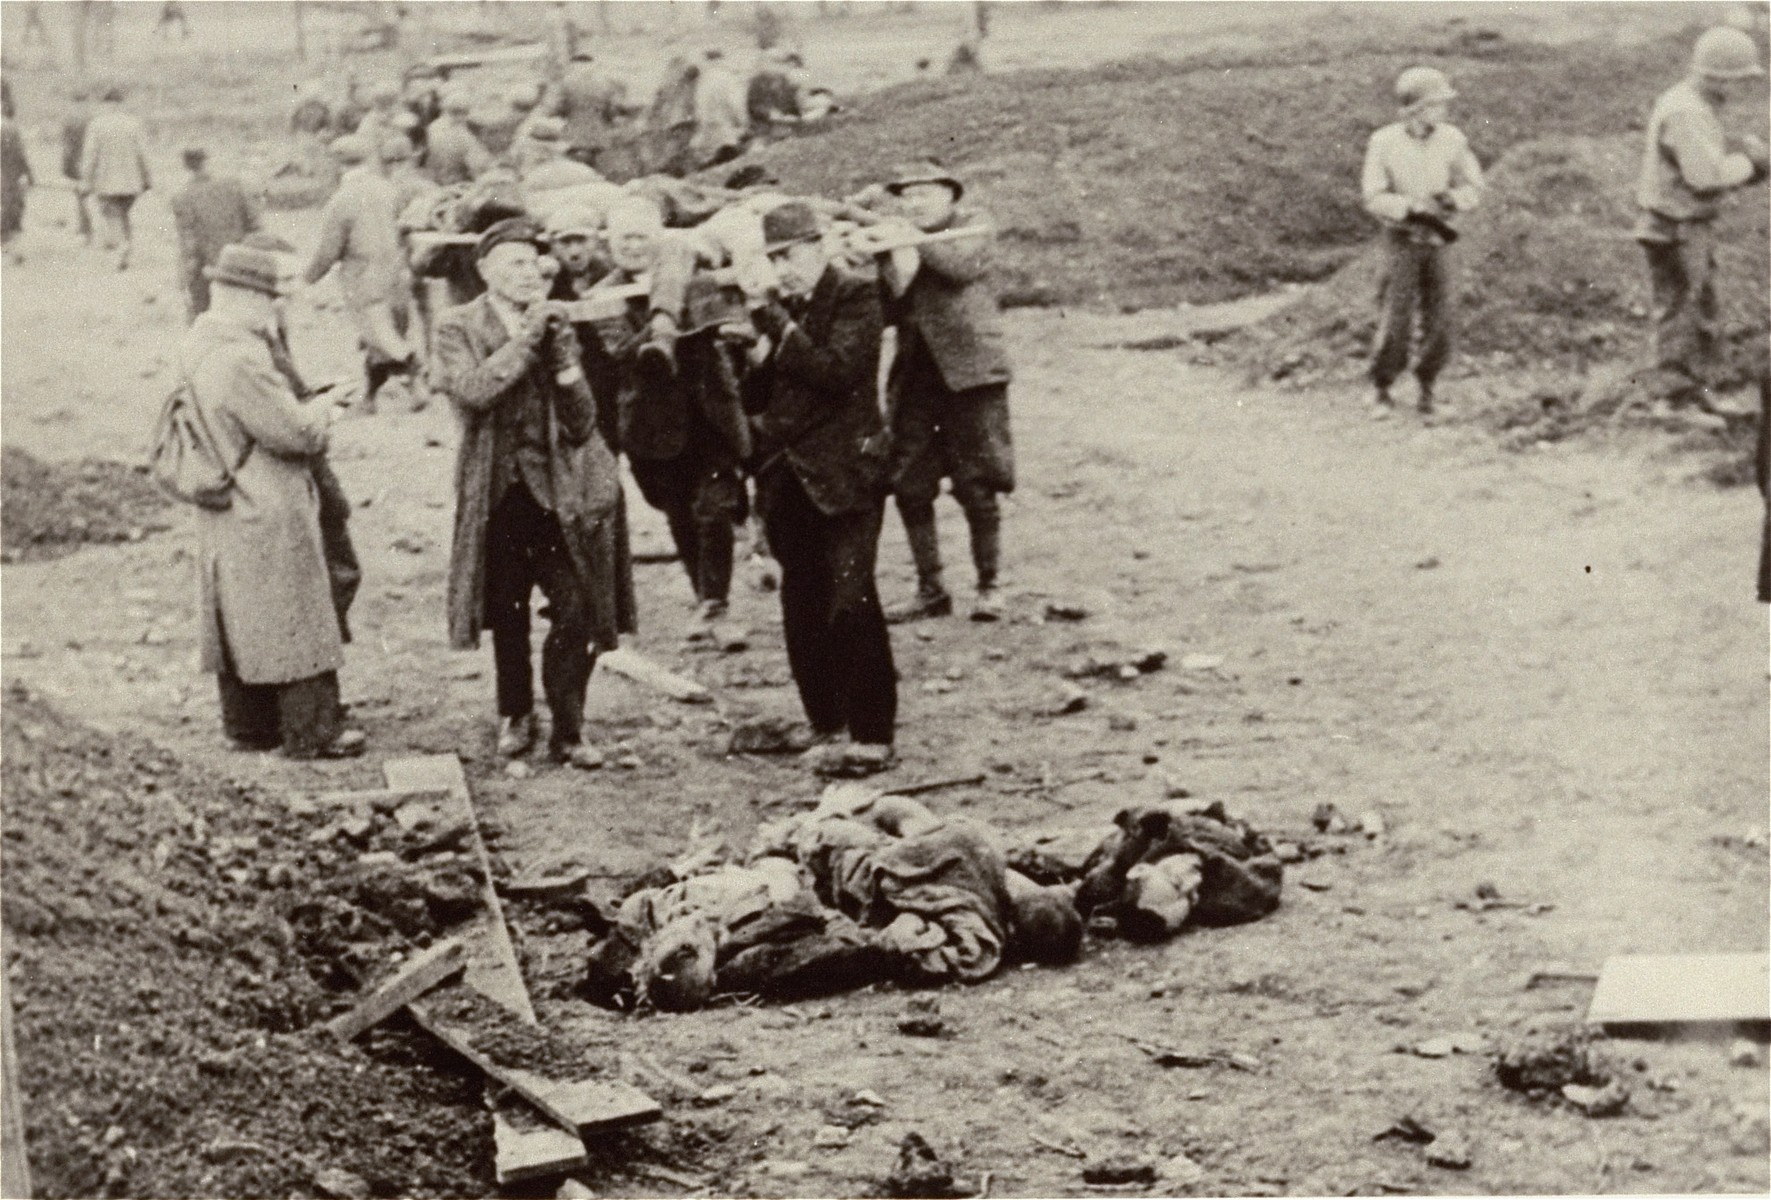 German civilians from the town of Nordhausen bring corpses to mass graves for burial.